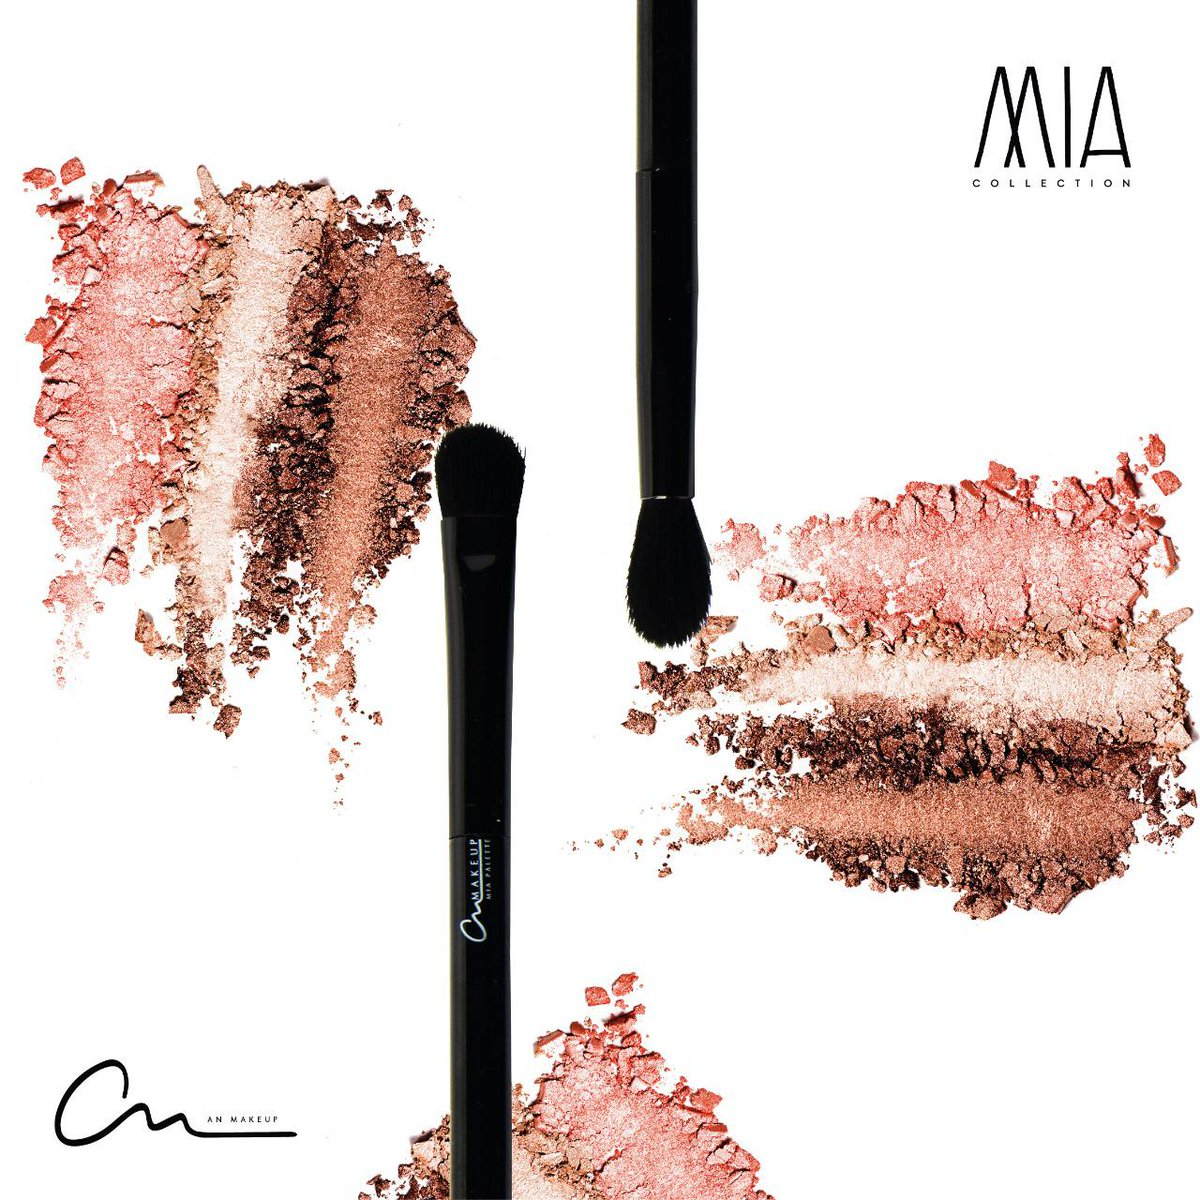 #MIAPALETTE 💋 la combinación perfecta✨ #anmakeup1111 #MIAPALETTE #BecomeYourDream . . . . #makeuplovers #makeupartists #makeupdreamers #makeup #eyeshadows #anahi